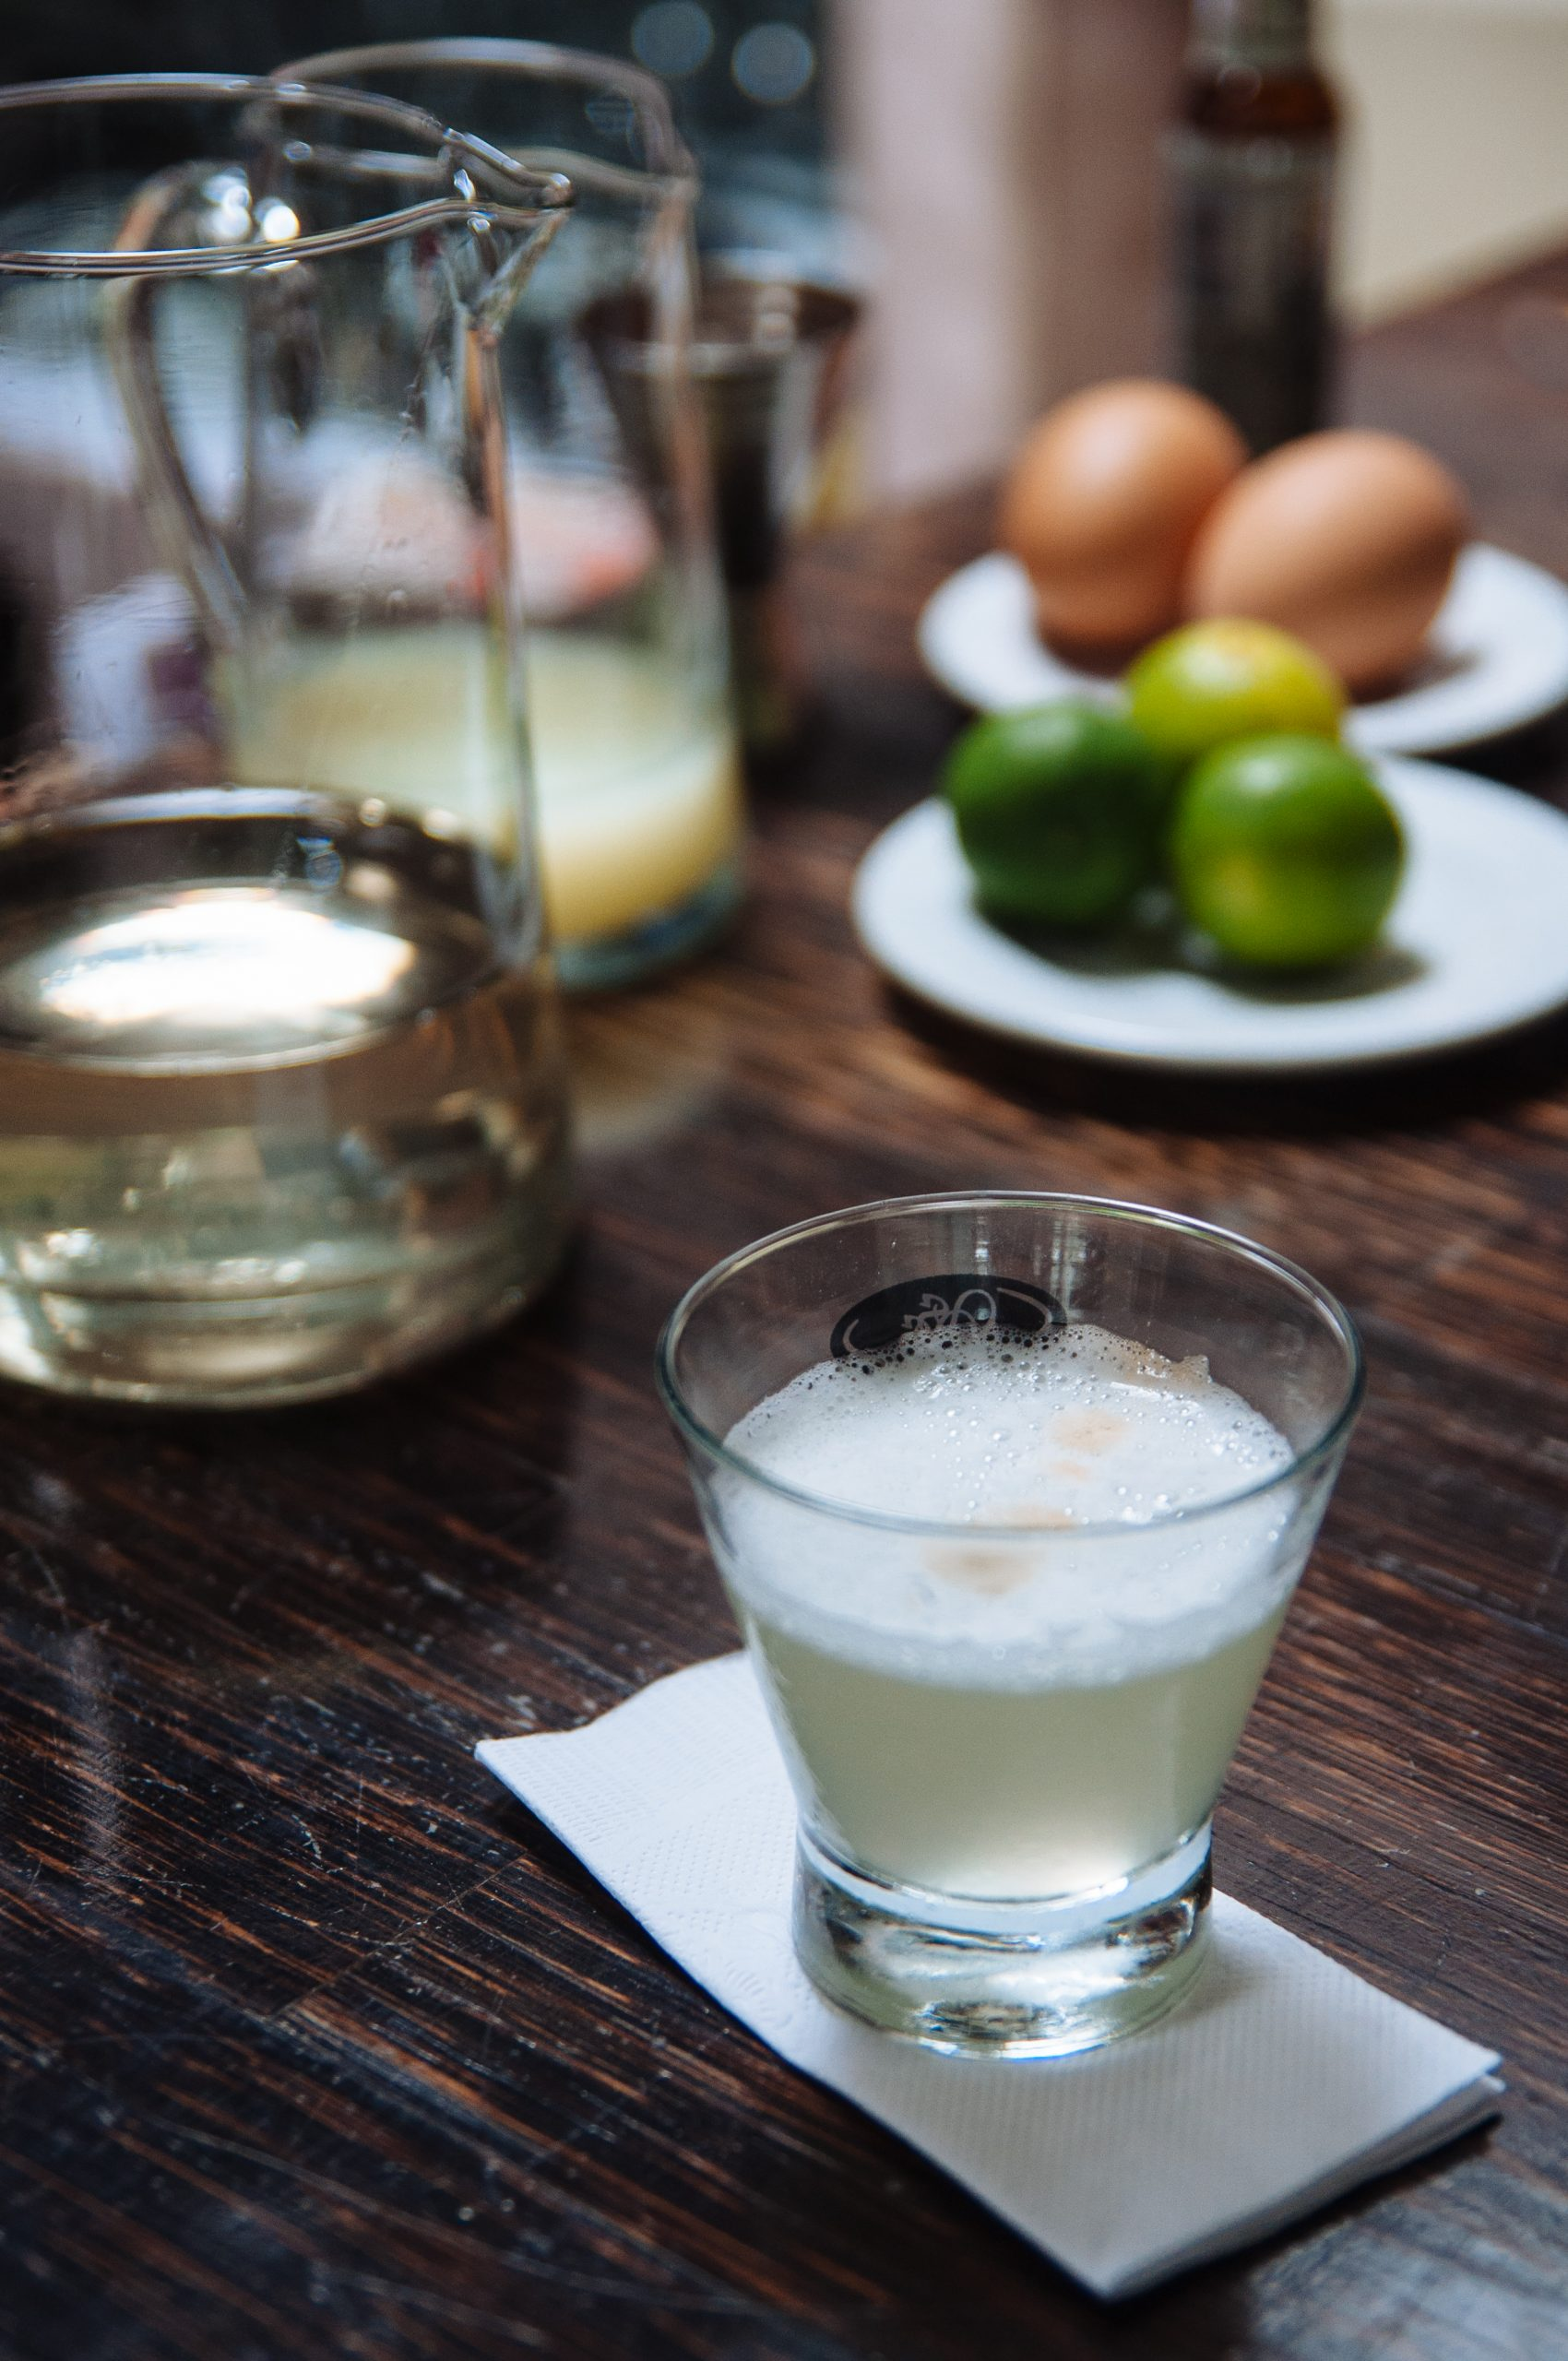 A Pisco Sour on display at Senorio de Sulco